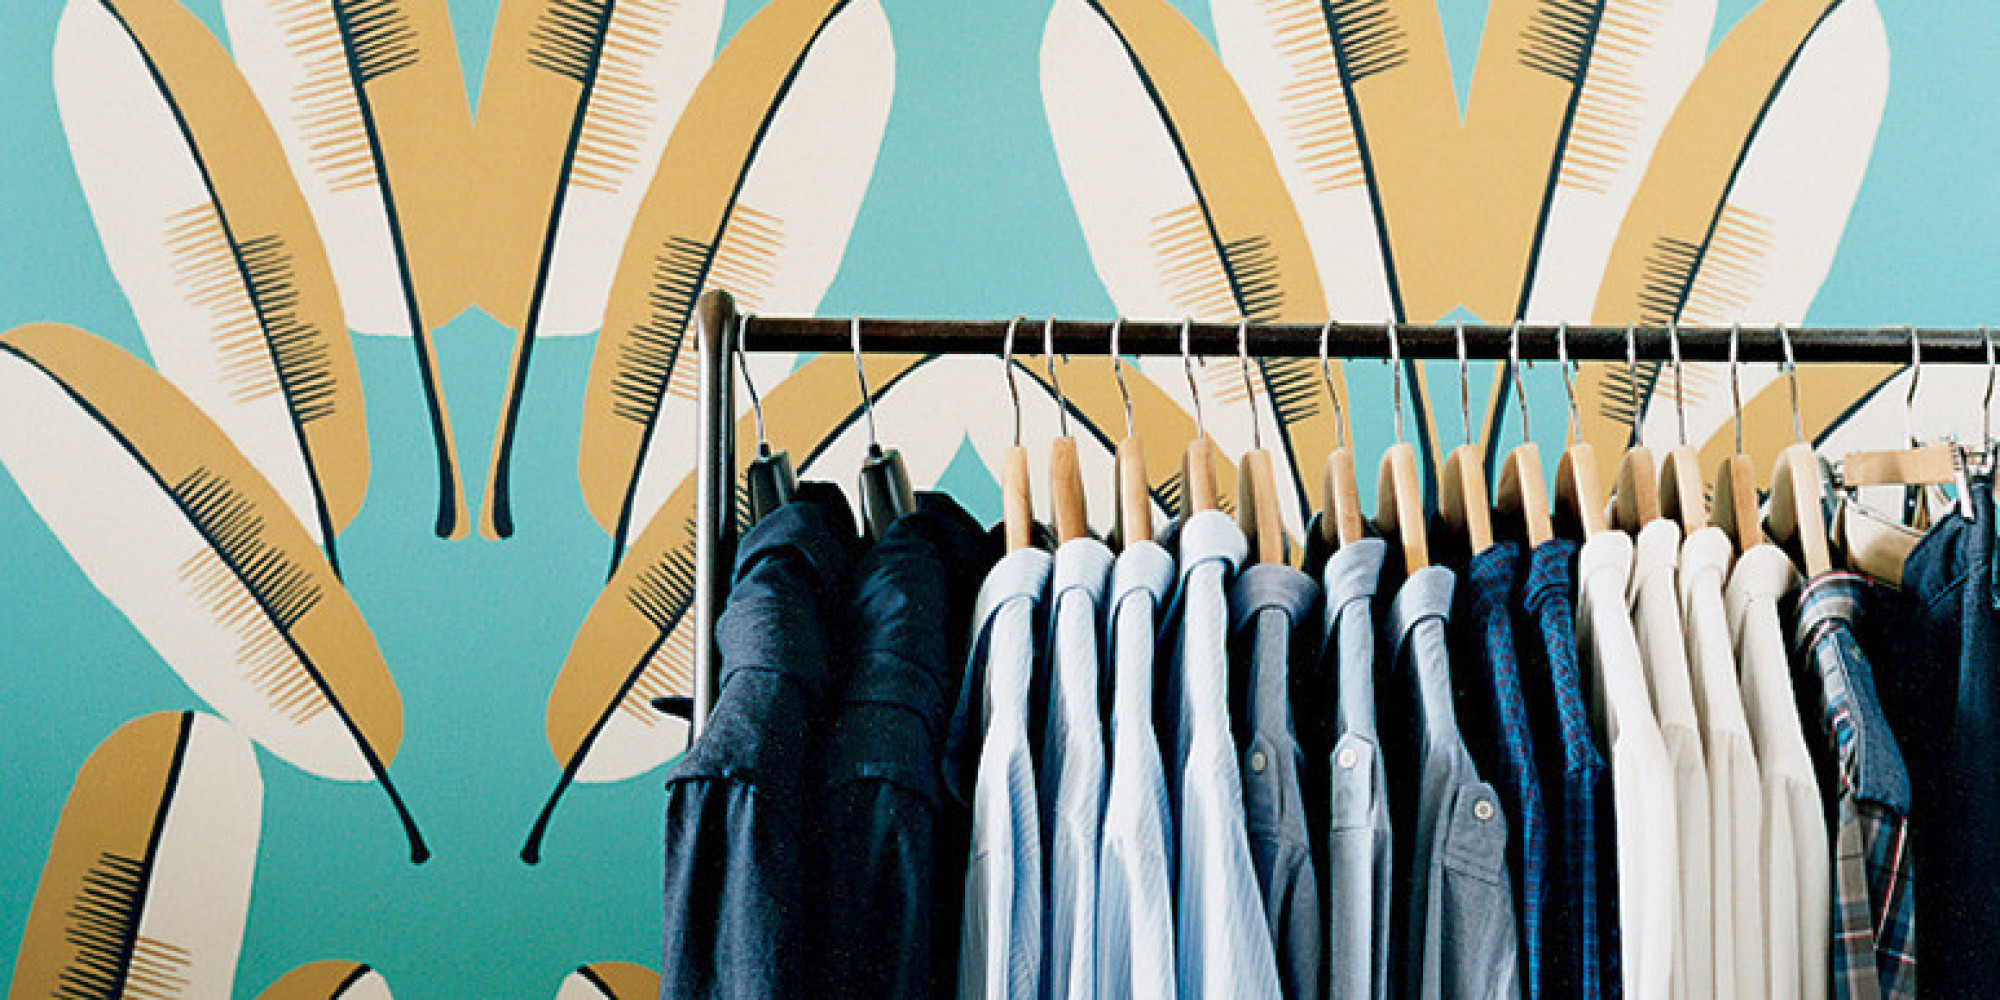 6 Ways To Store Your Stuff When Thereu0027s Not Enough Closet Space | HuffPost